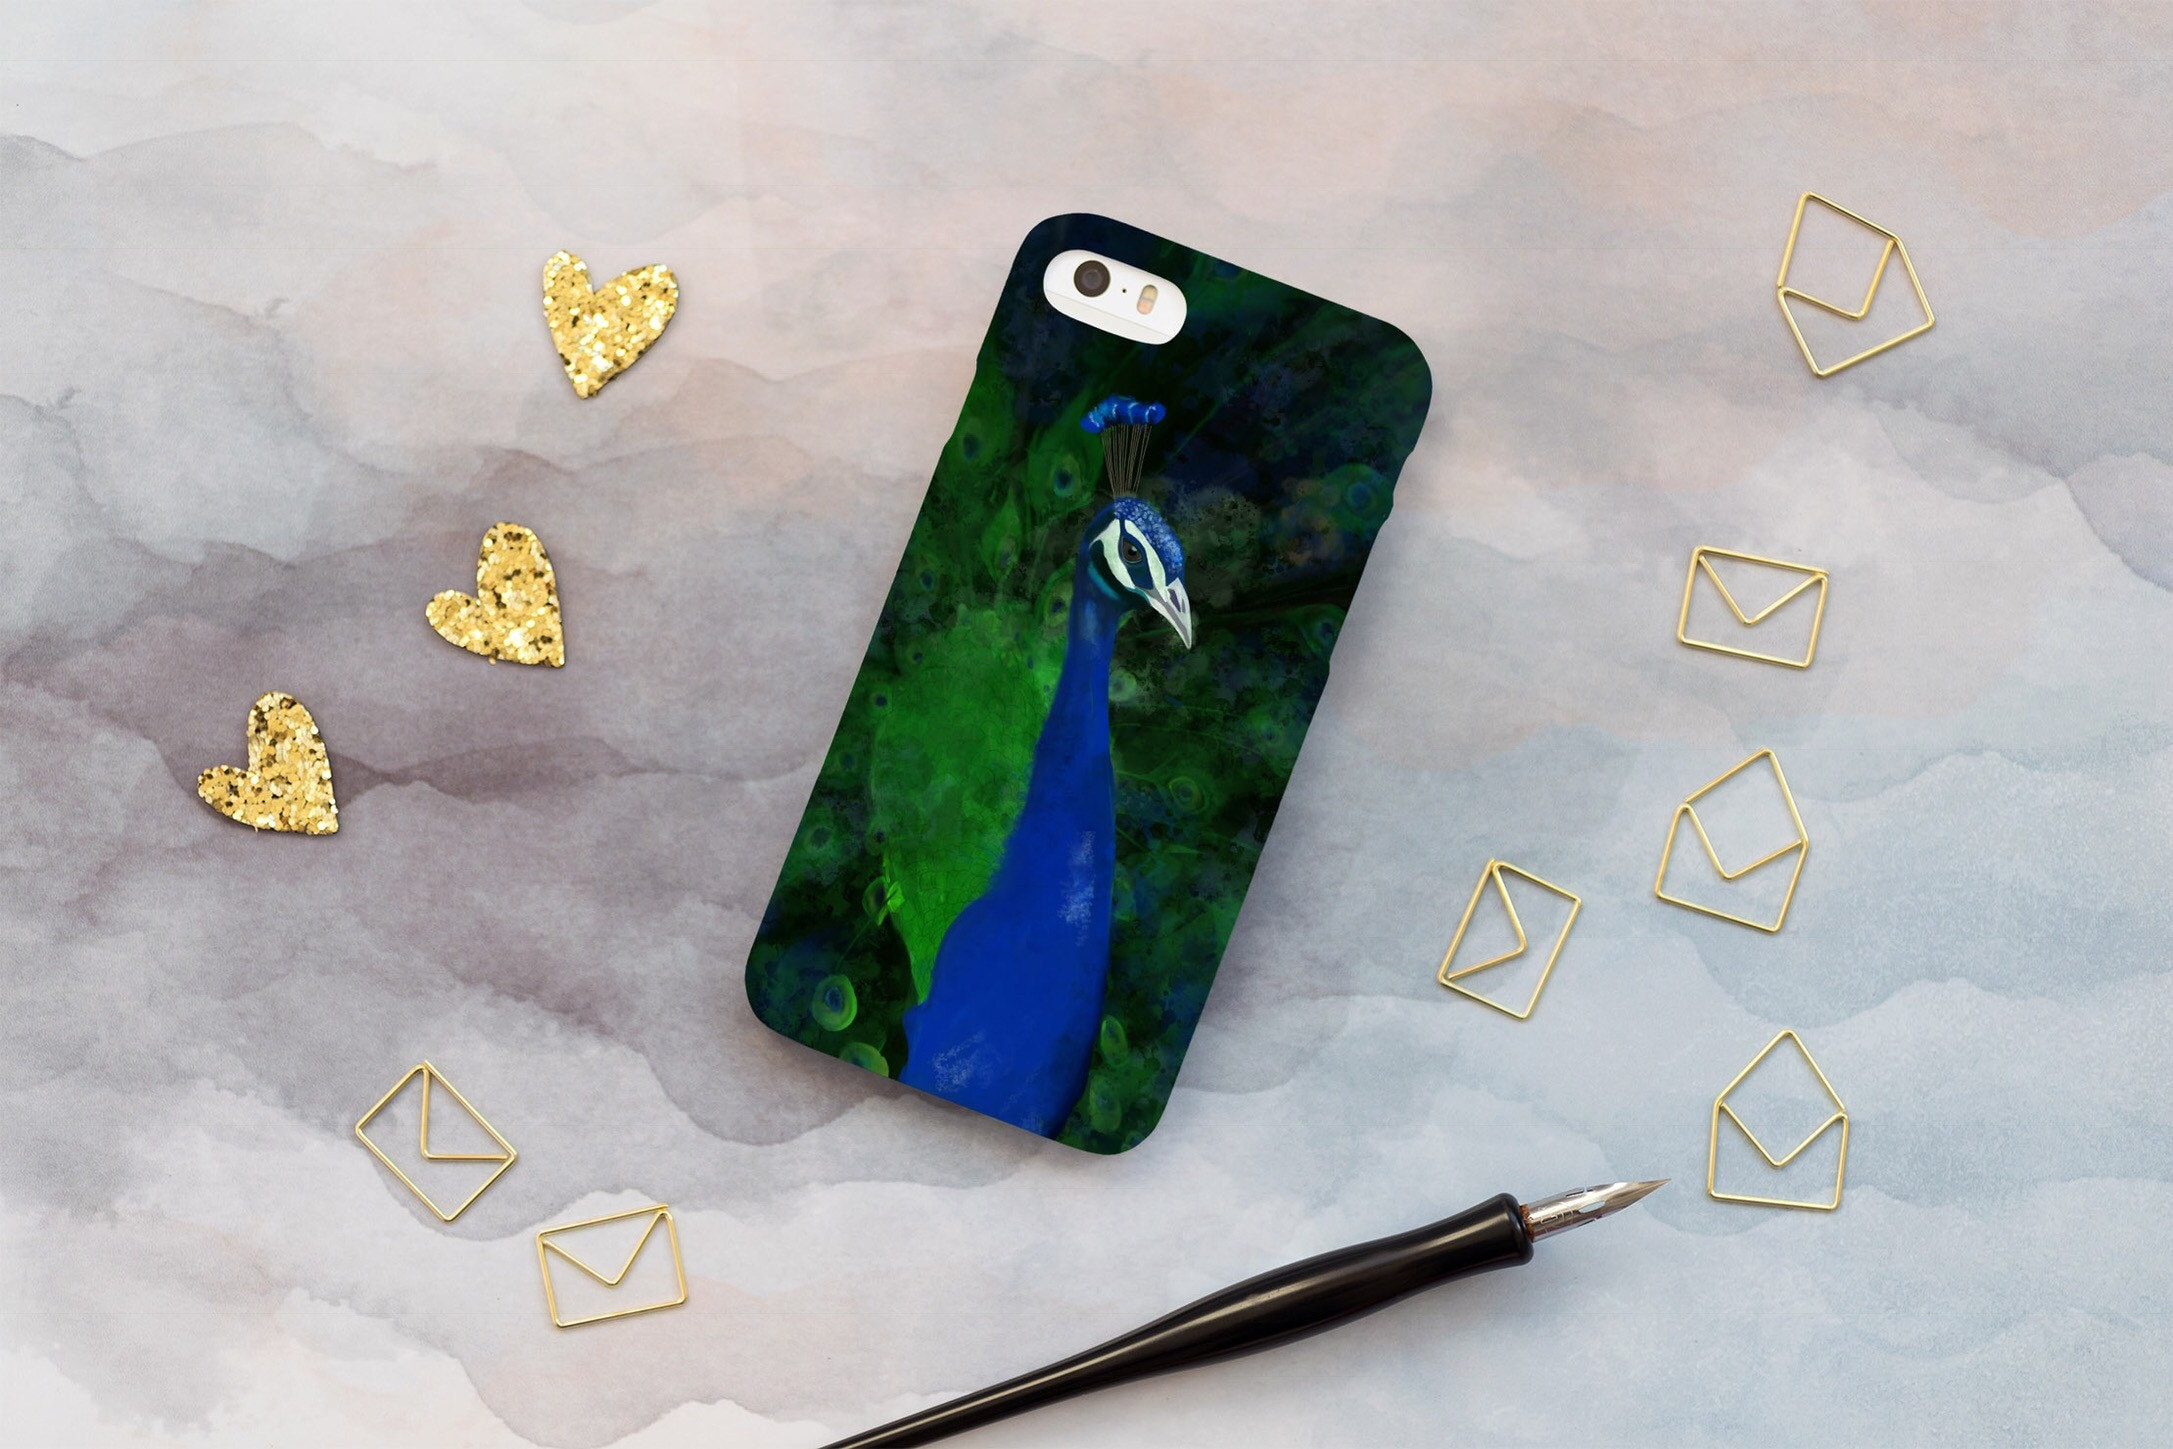 new arrival 6d202 feb23 Peacock iPhone case, peacock phone case, iPhone case, iPhone 6 case, iPhone  7 case, peacock, iPhone X case, iPhone 6s case